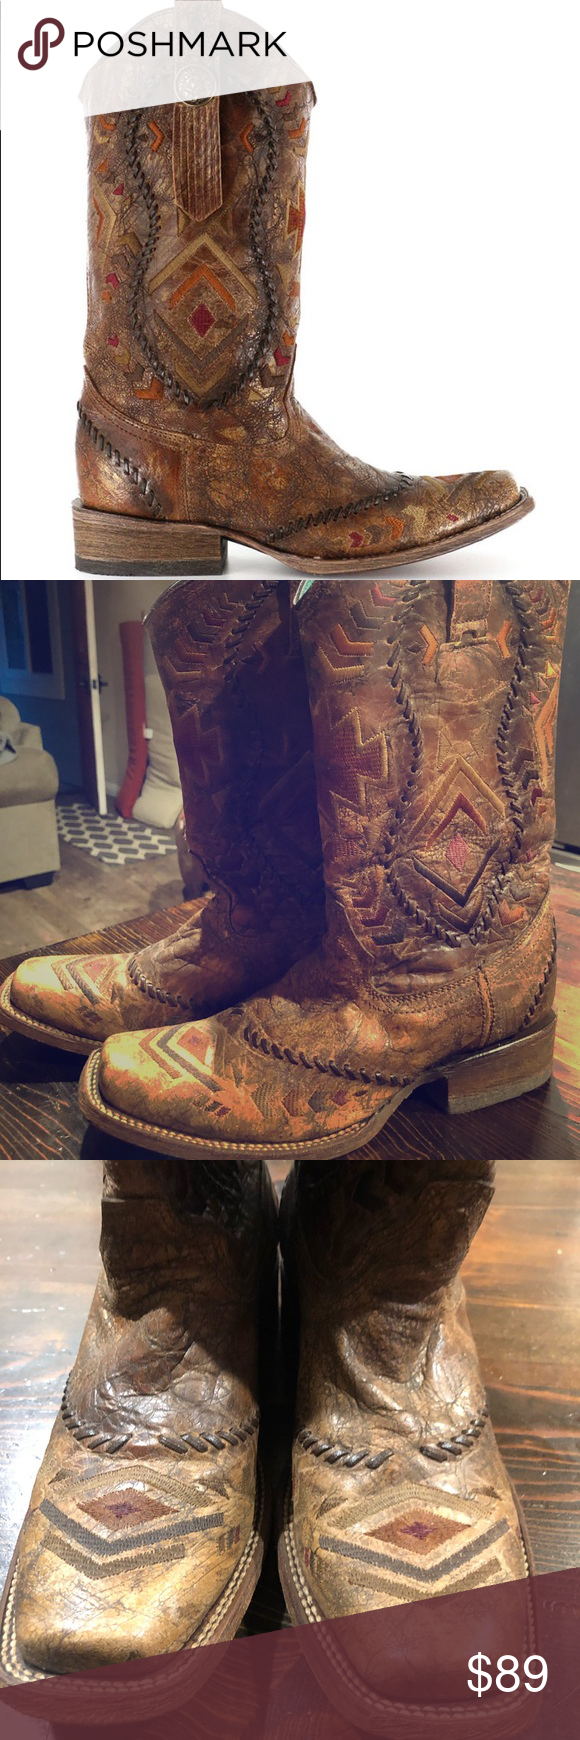 03dd00108bf Corral Women's Aztec Square Toe Western Boots 7.5 Corral Women's ...